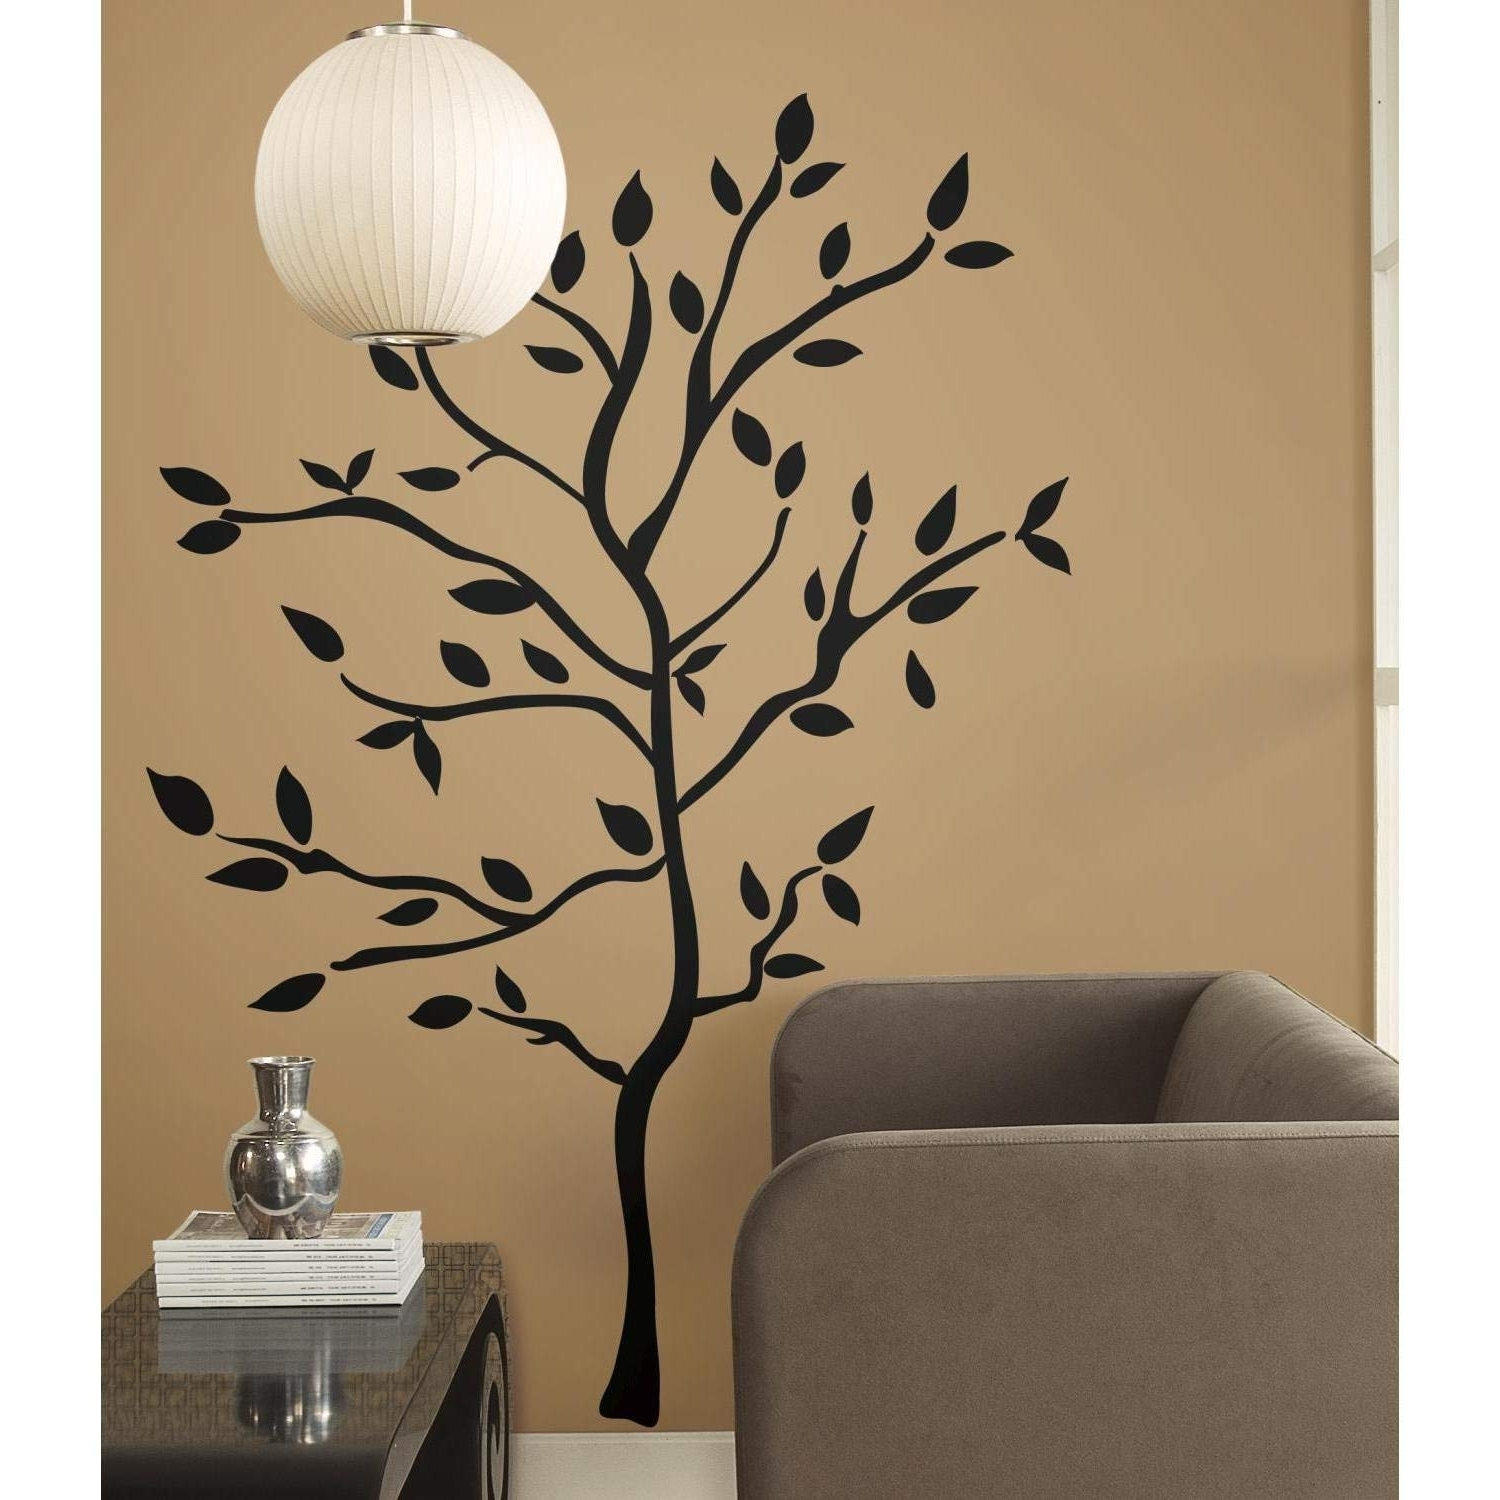 Recent Roommates Rmk1317Gm Tree Branches Peel And Stick Wall Decals, Wall Intended For Wall Sticker Art (View 12 of 15)